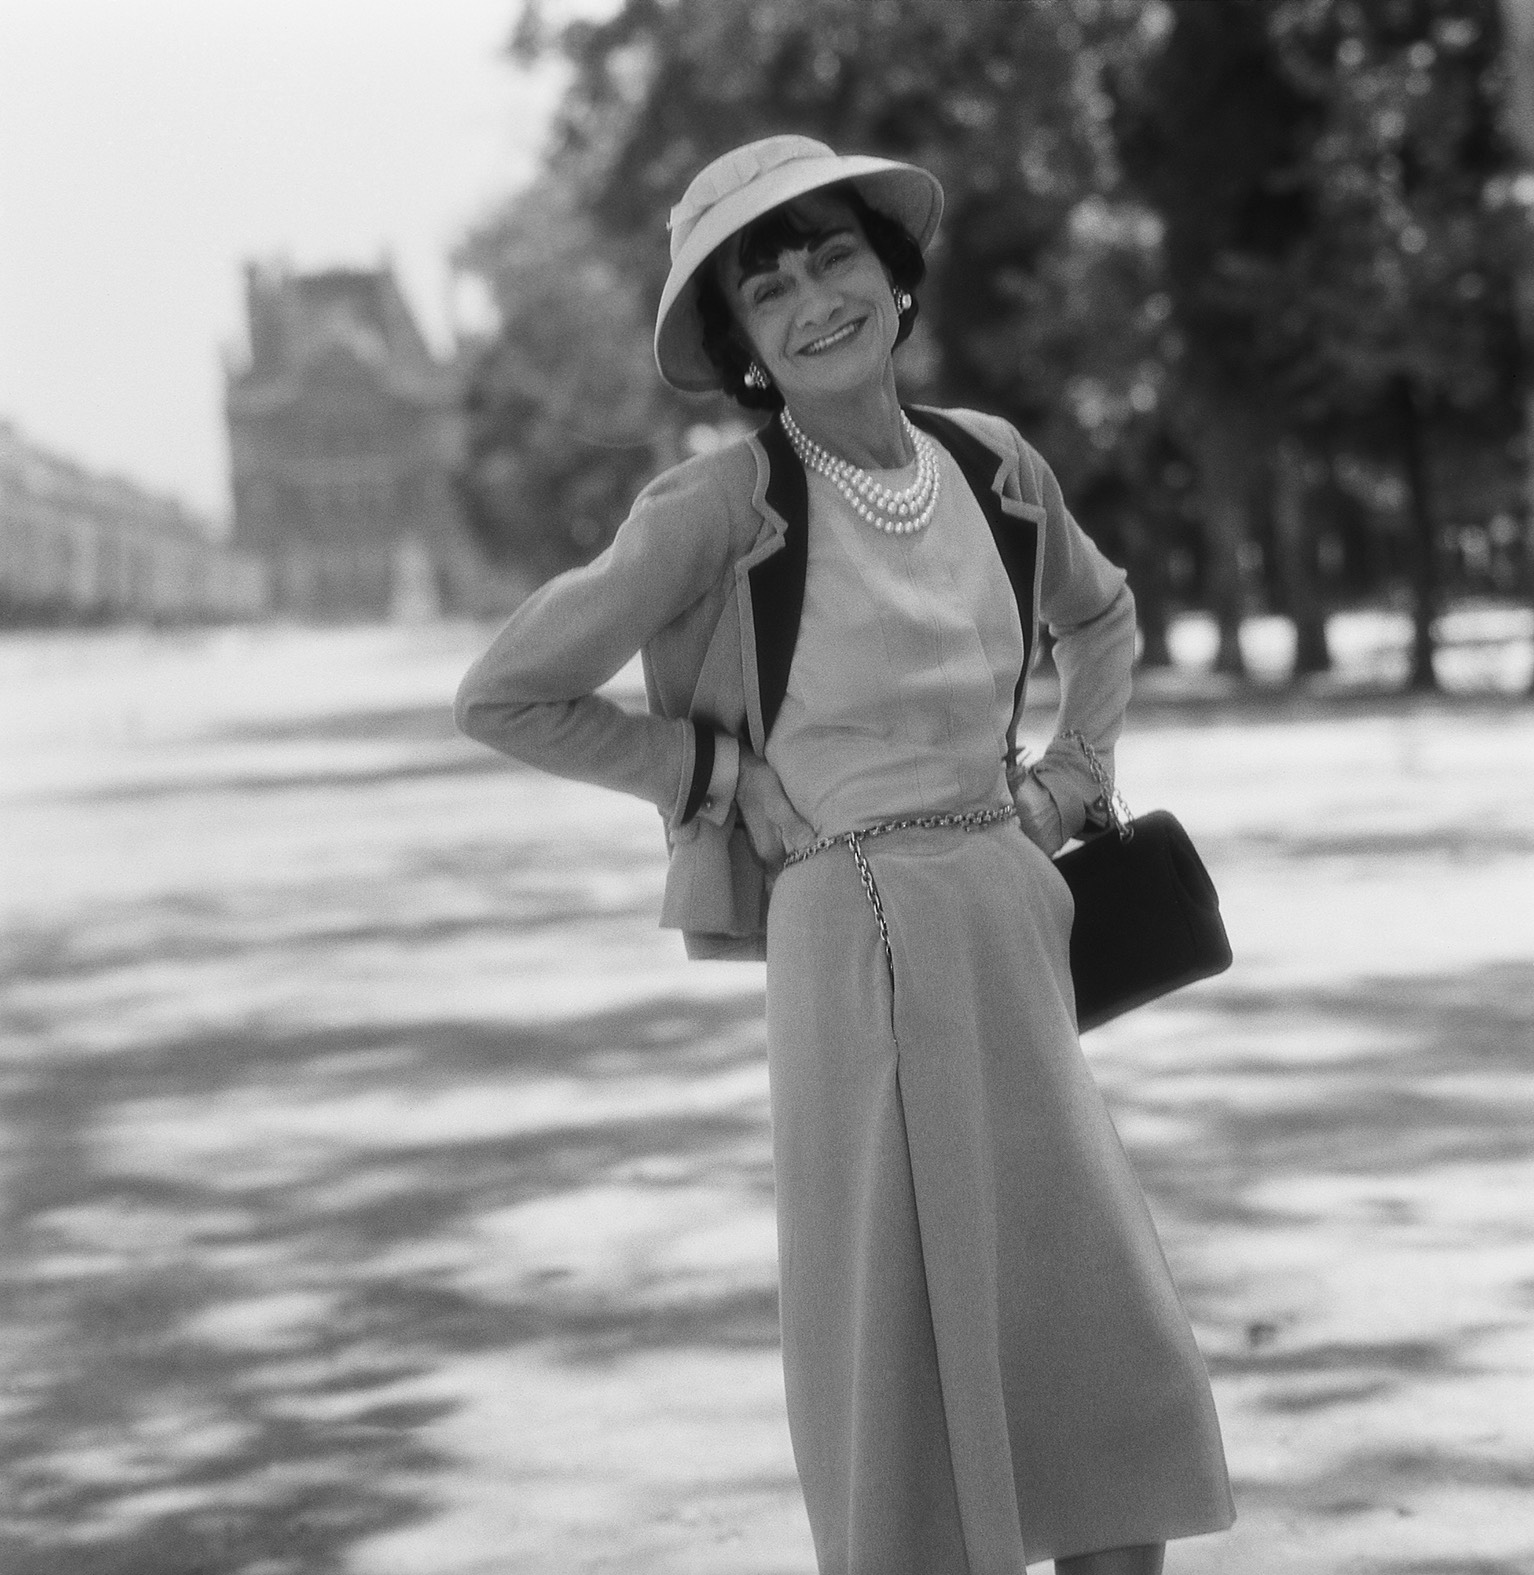 Mademoiselle Chanel in the Tuilleries Gardens, Paris, 1959